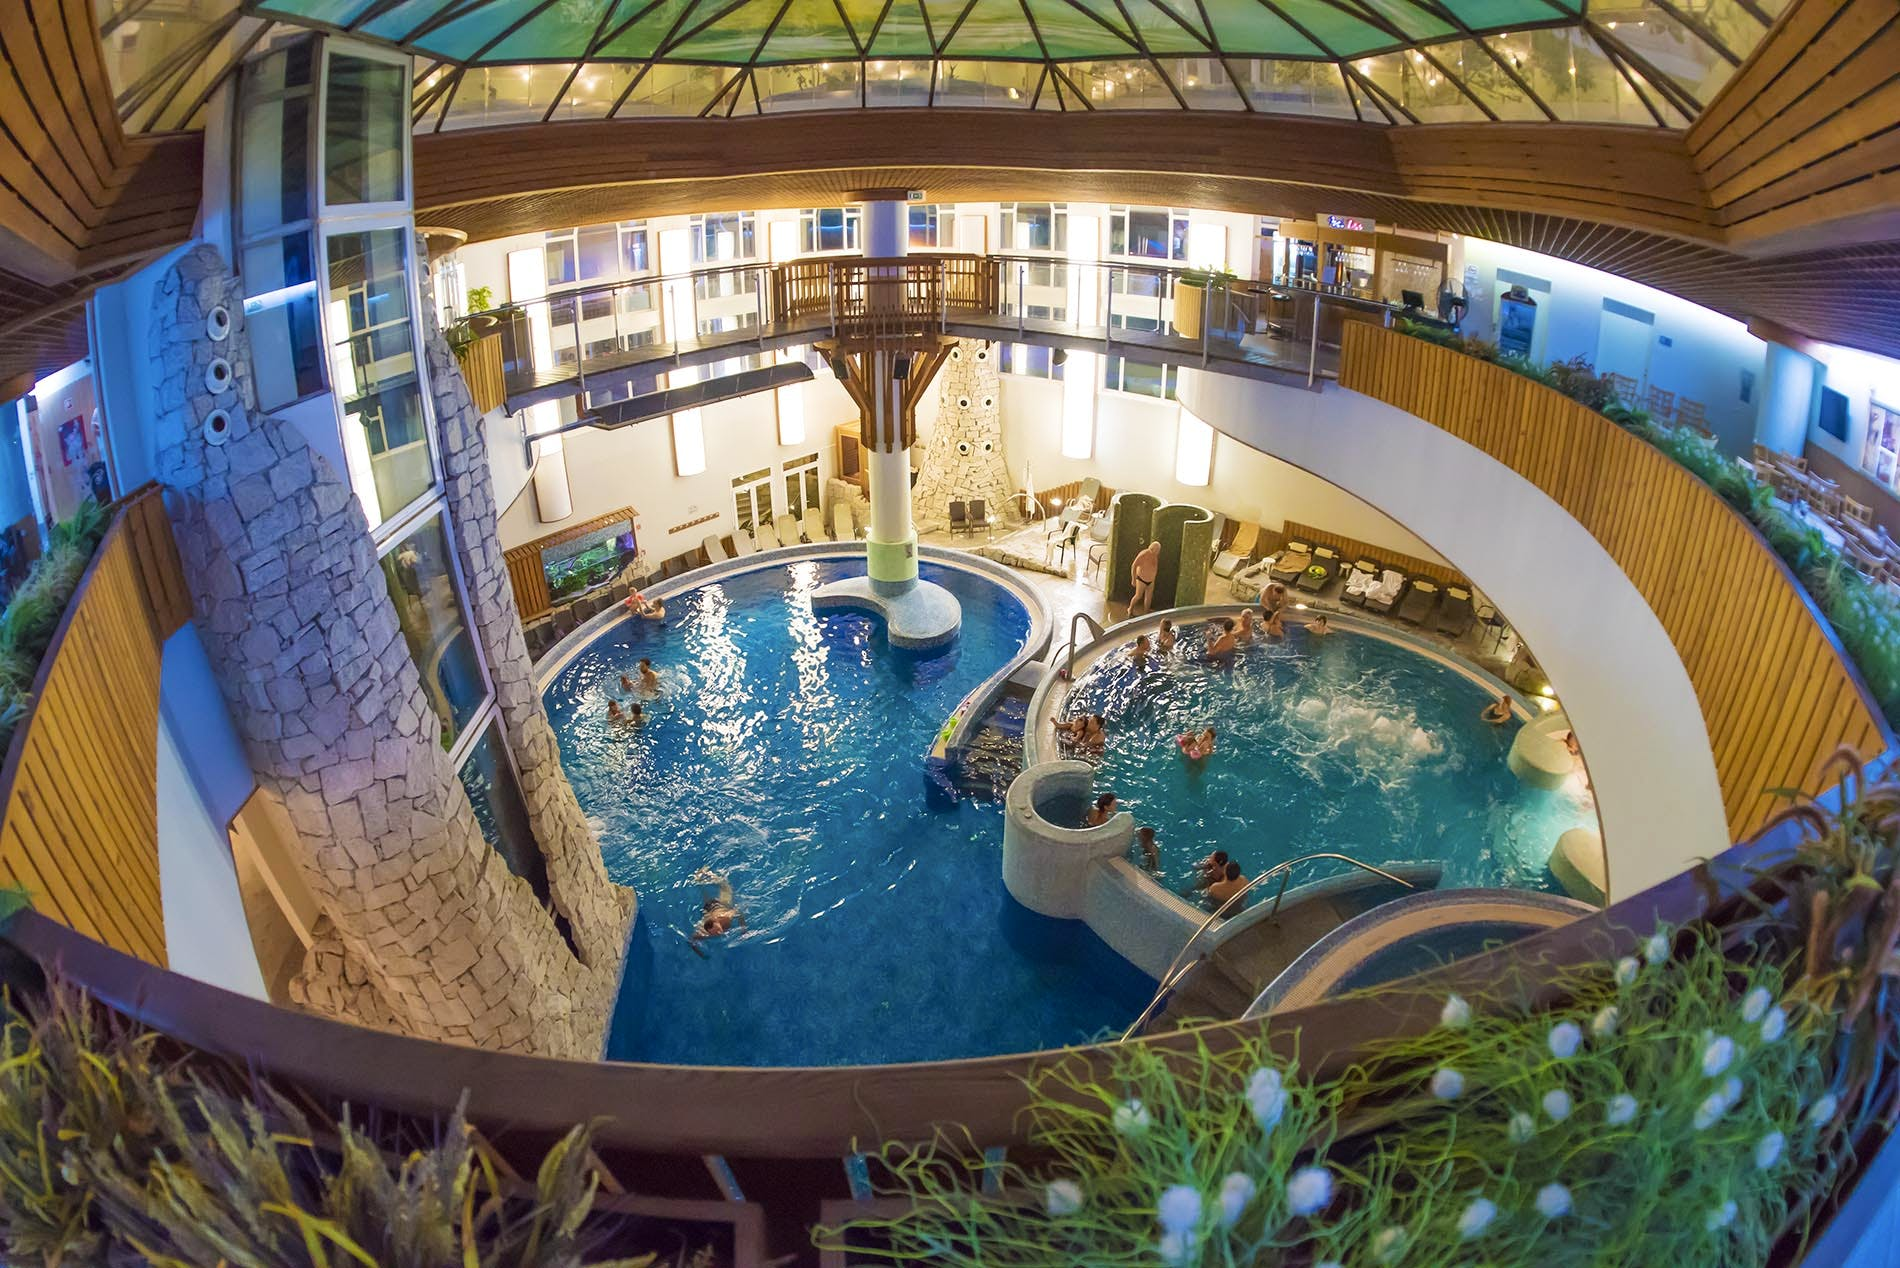 Spa wellness hotel  Kur & Wellness in Ungarn - MenDan Magic Spa & Wellness Hotel in ...